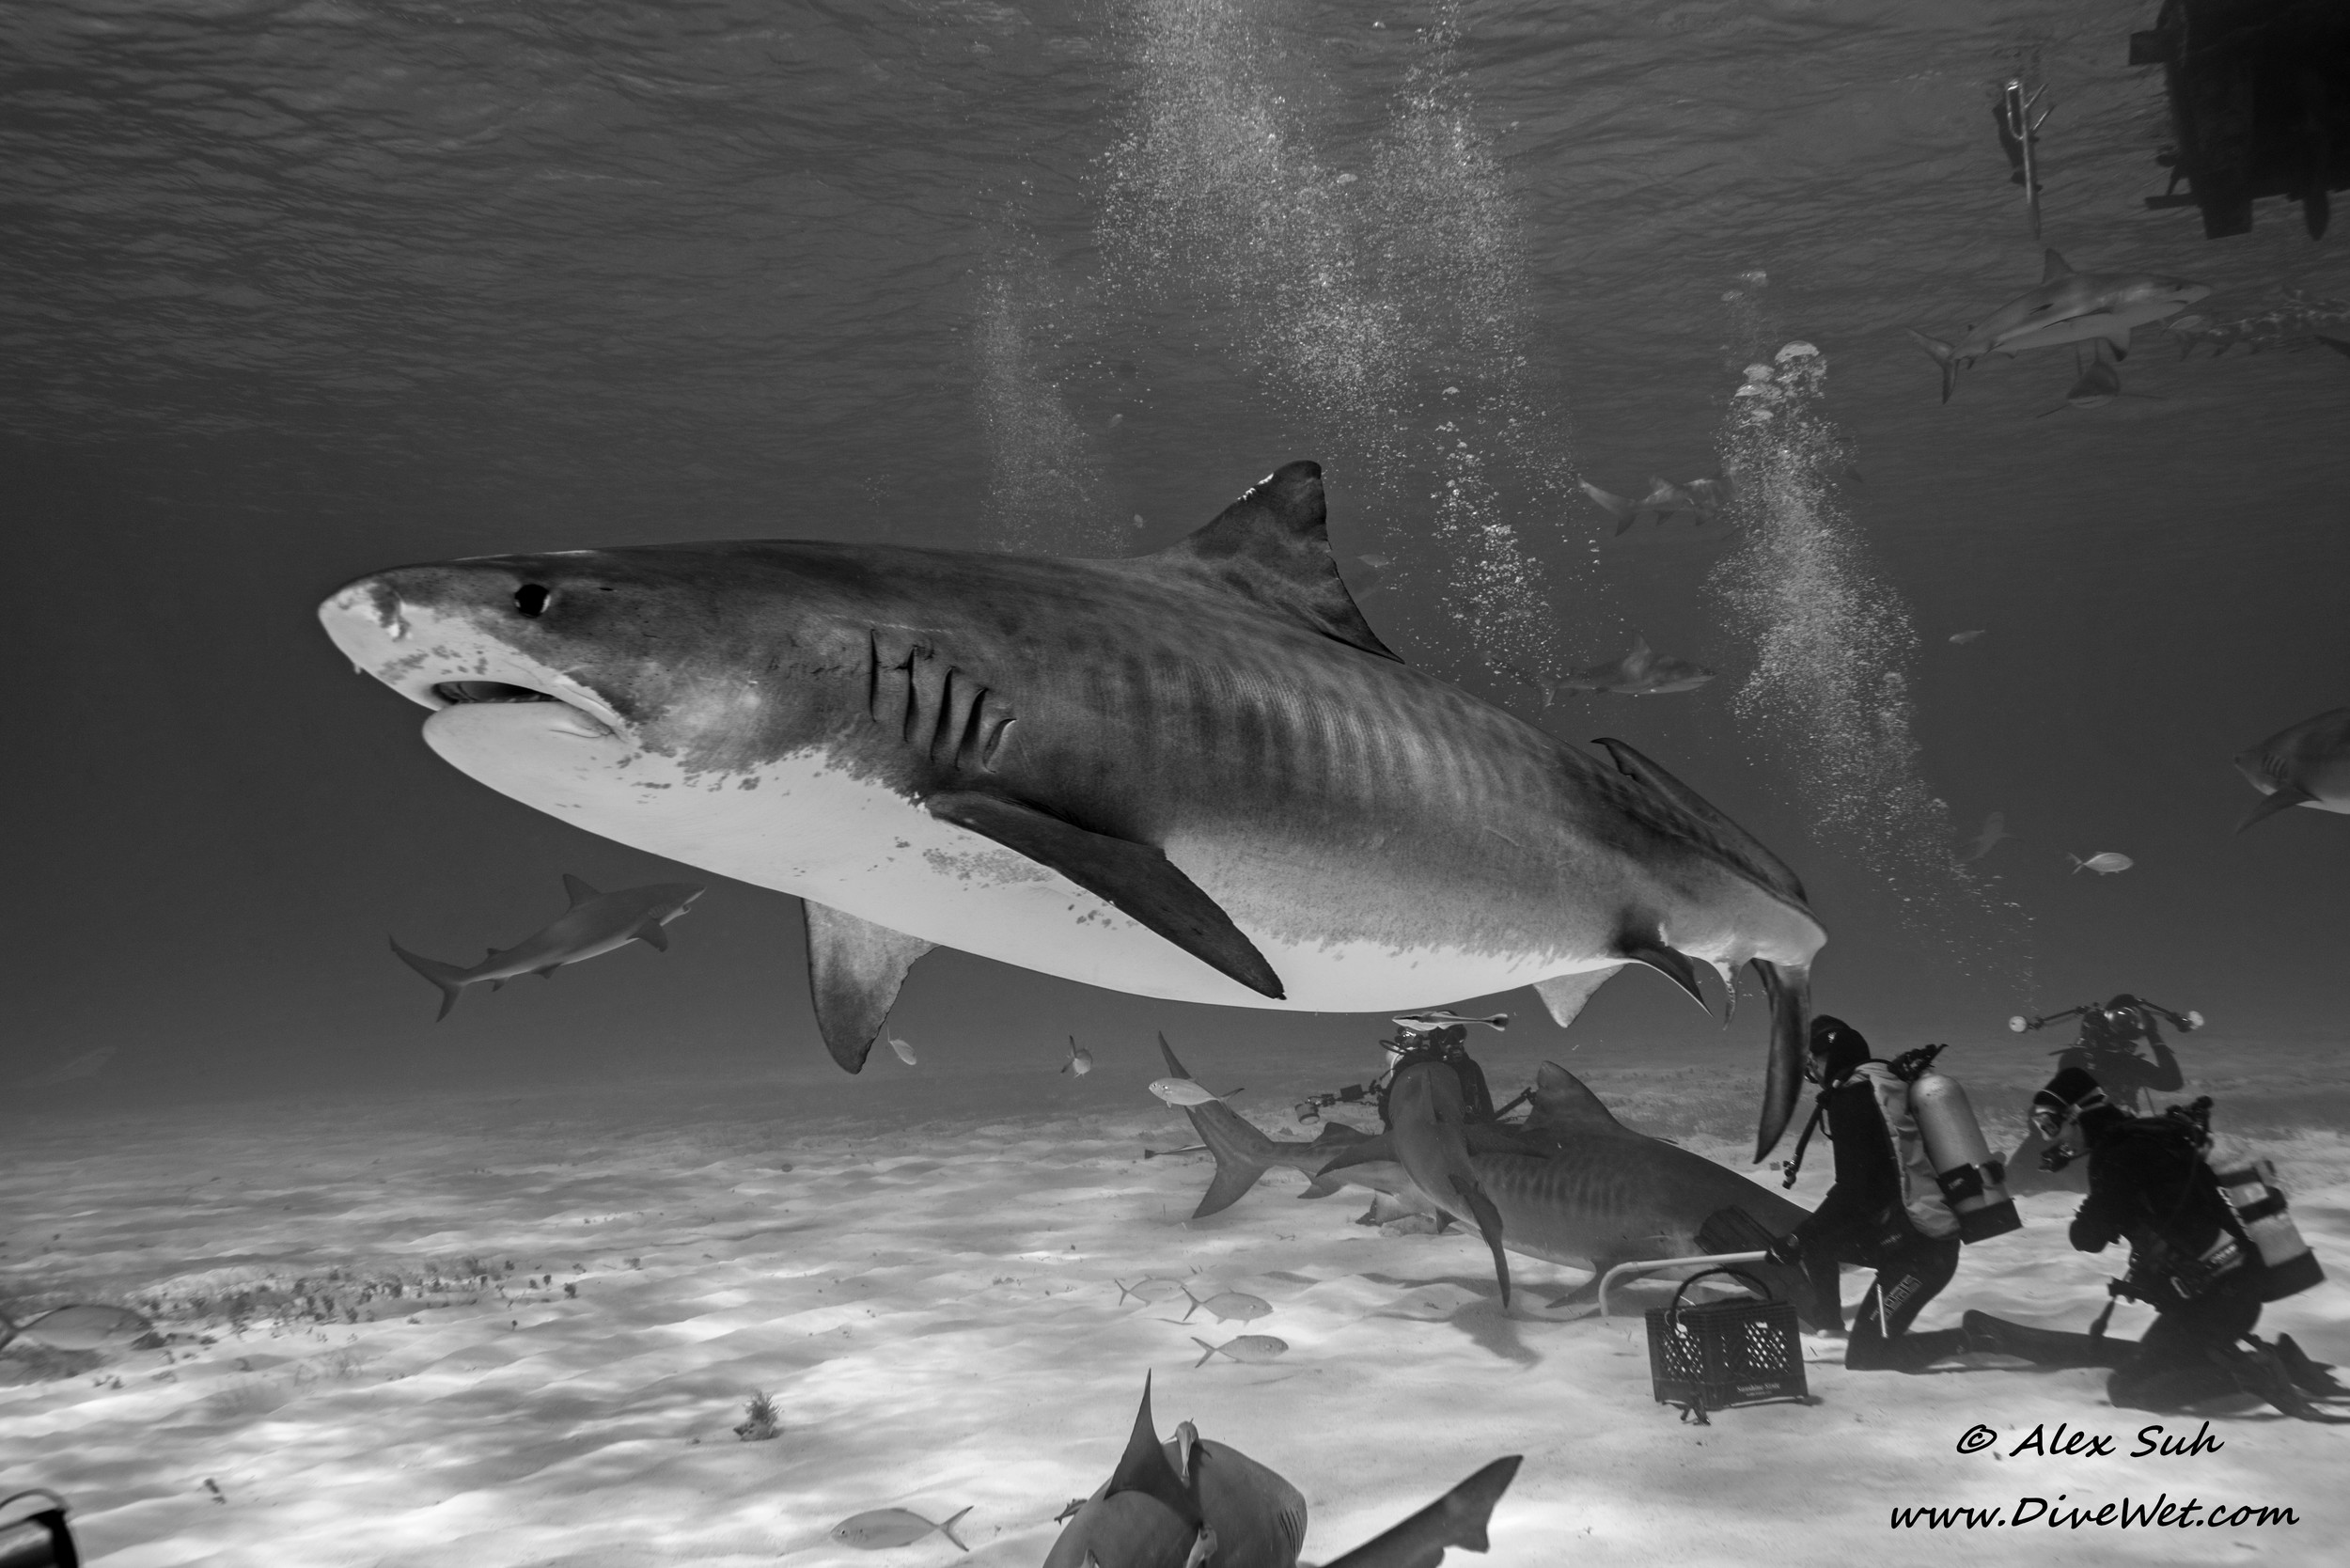 Tiger Shark Action BW.jpg